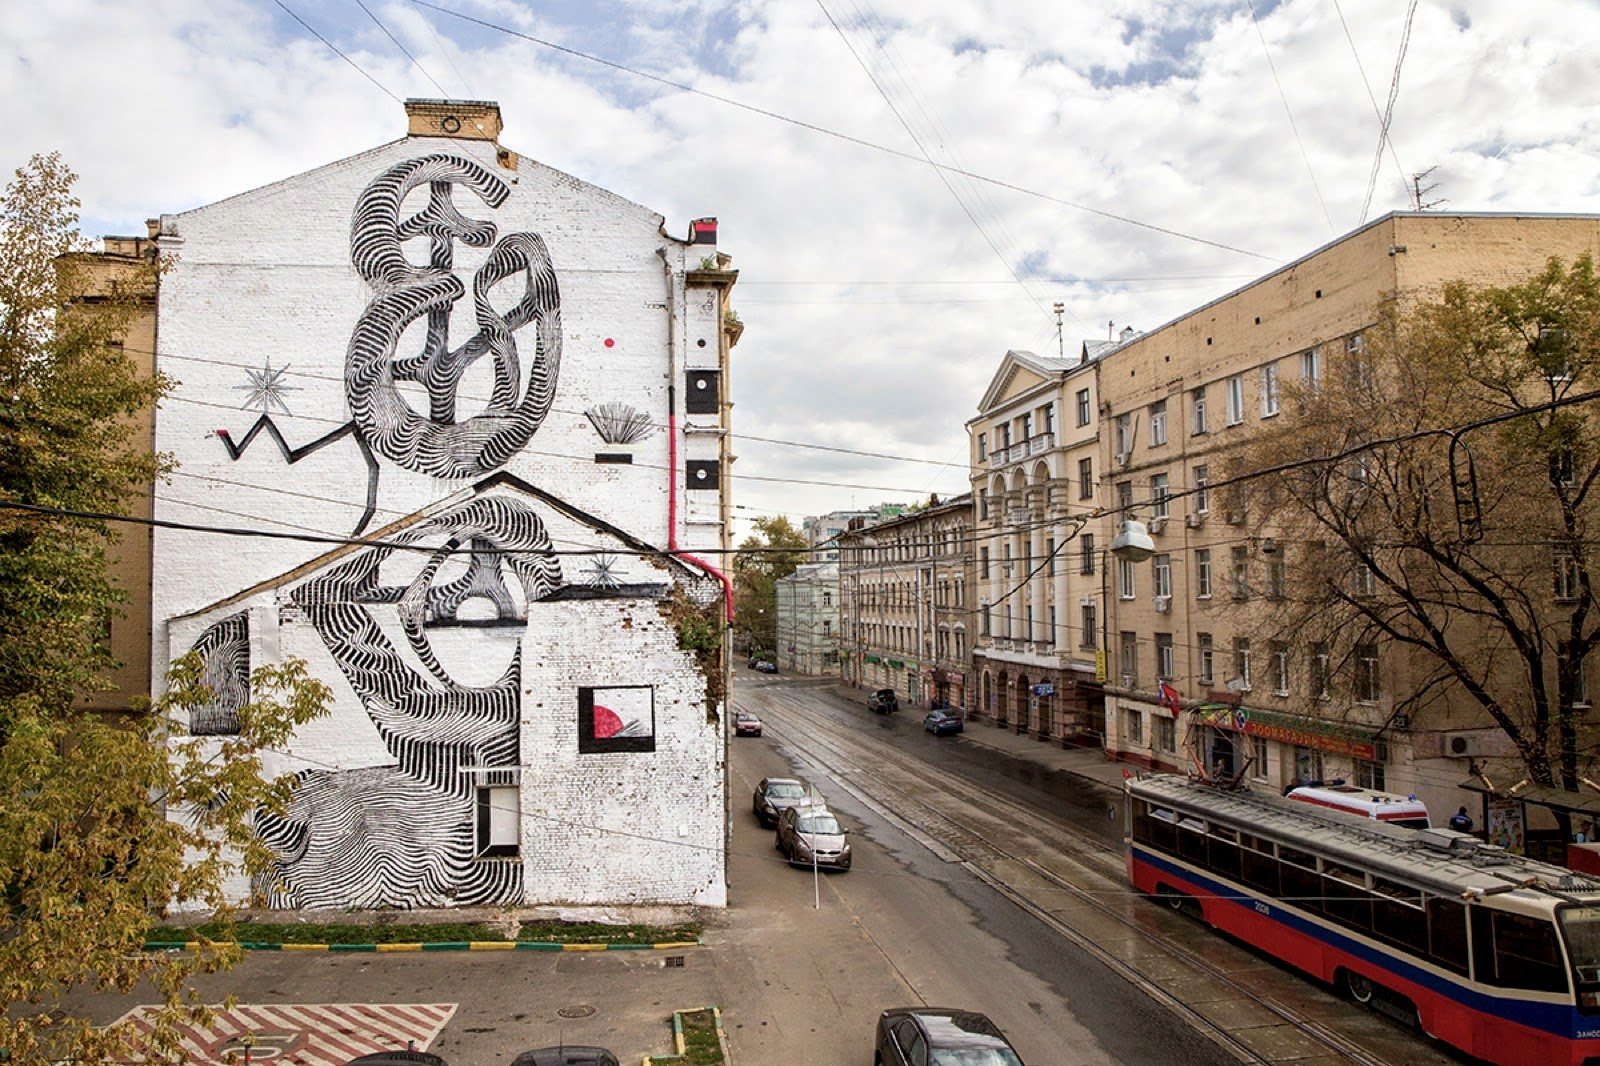 Our friend 2501 just spent a few days in Russia where he was invited by Artmossphere to work on a new street art piece.